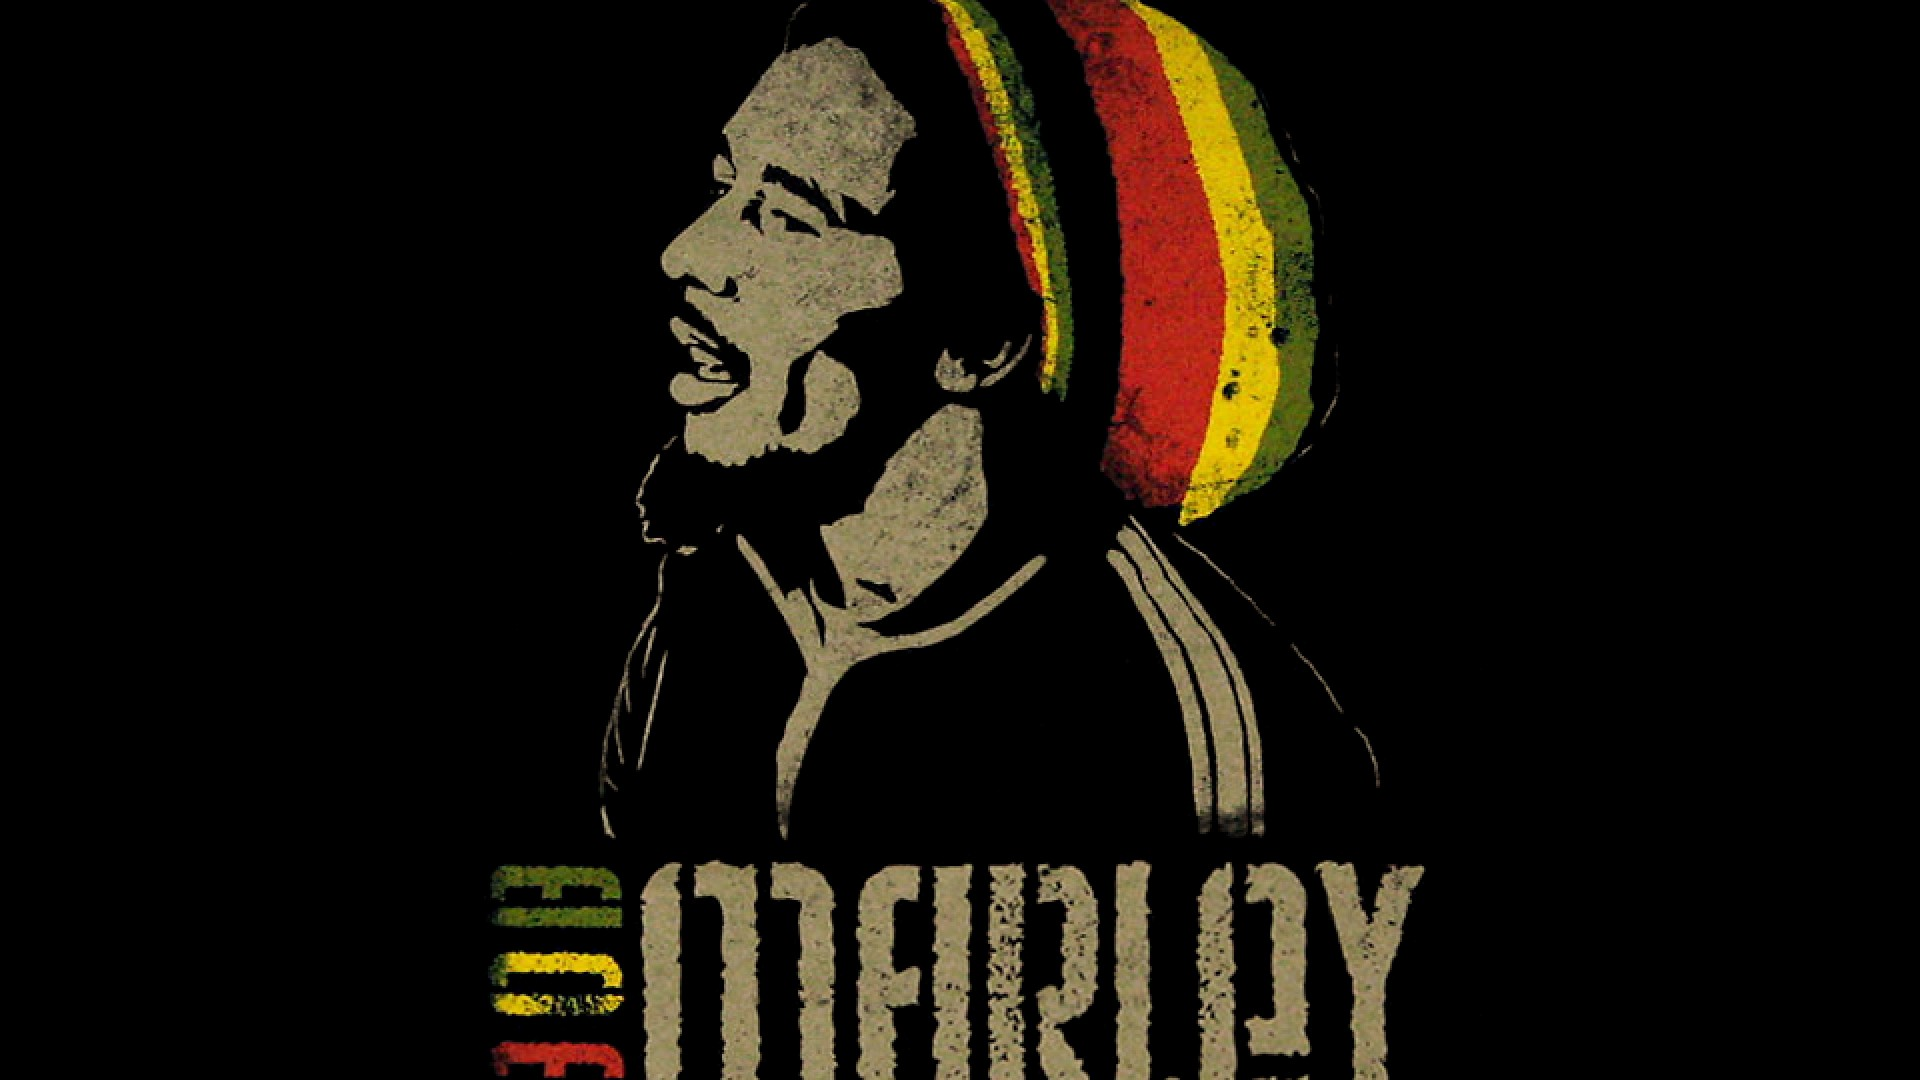 Bob Marley Mobile Hd Hd Wallpaper